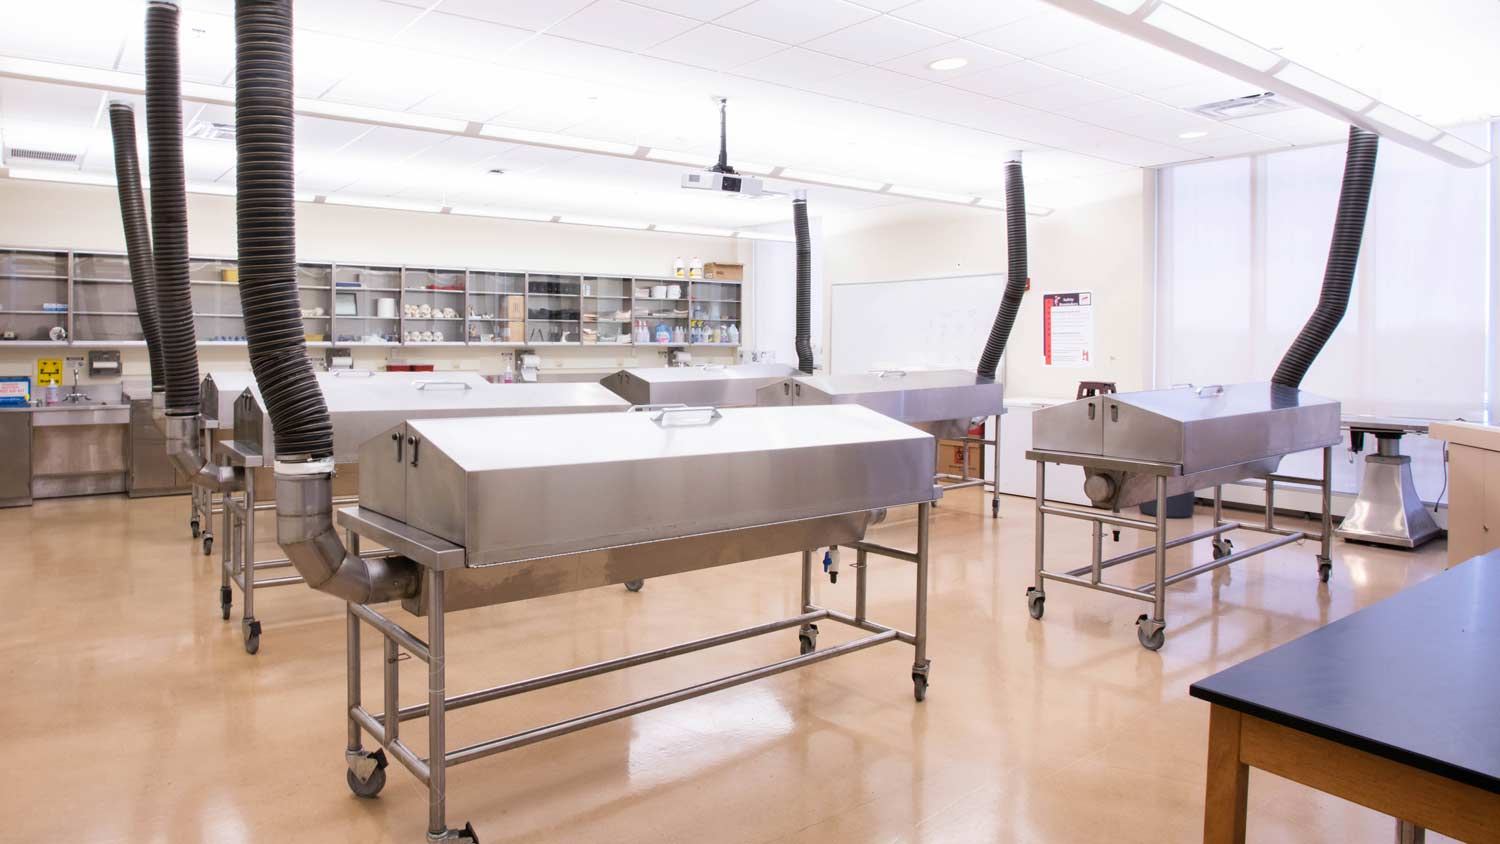 Cadaver lab with 6 tables